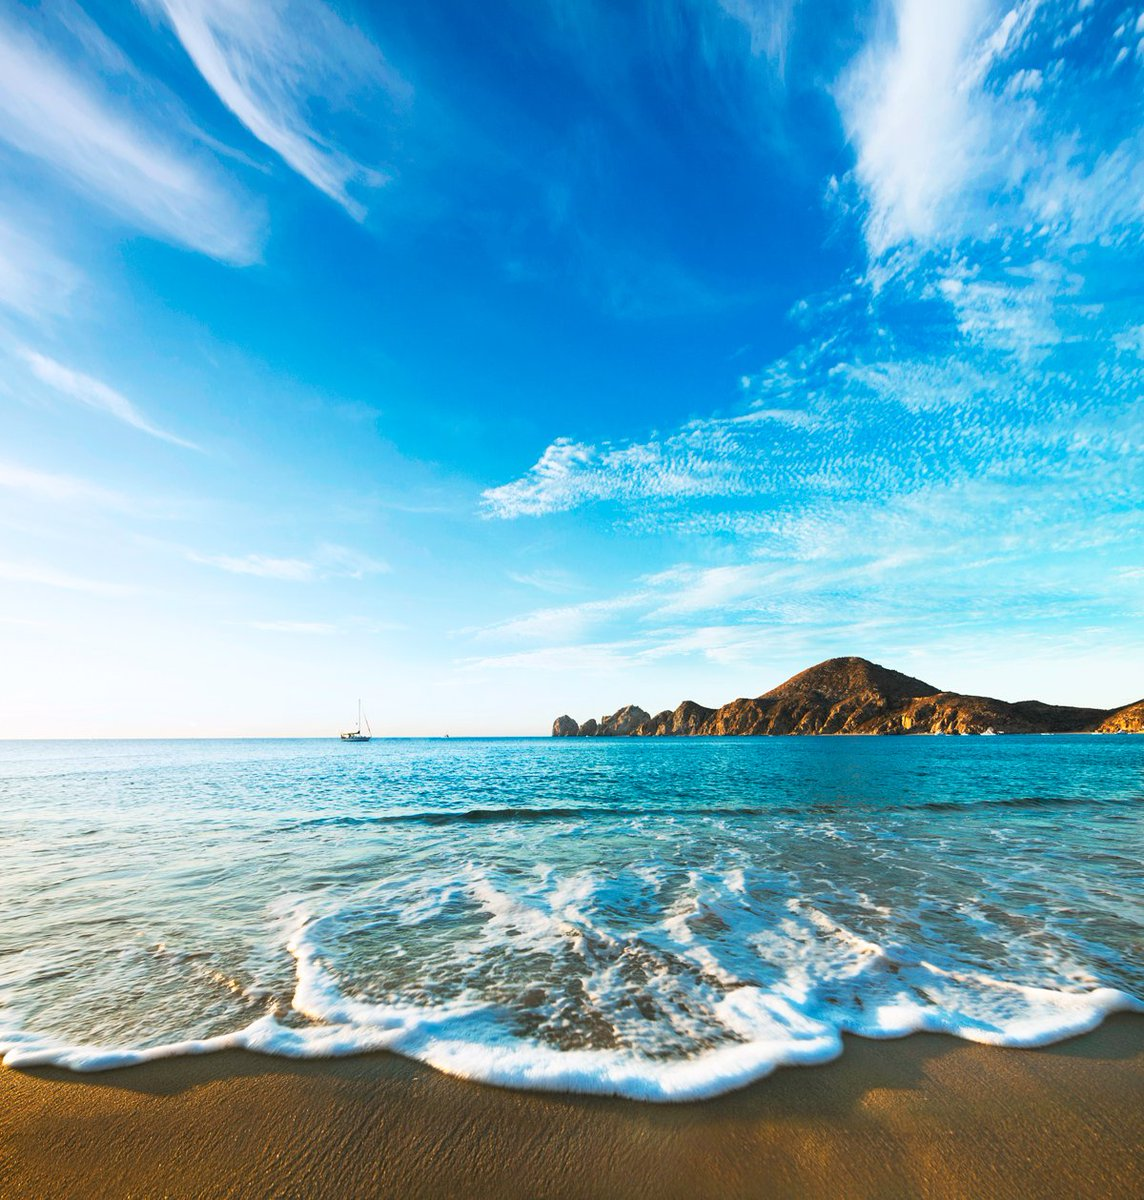 Retweet if you would rather be here right now. #Cabo #TGIF #MedanoBeach #CaboNow #CaboSanLucasBay @SunwingVacay https://t.co/mULsaPn3JC